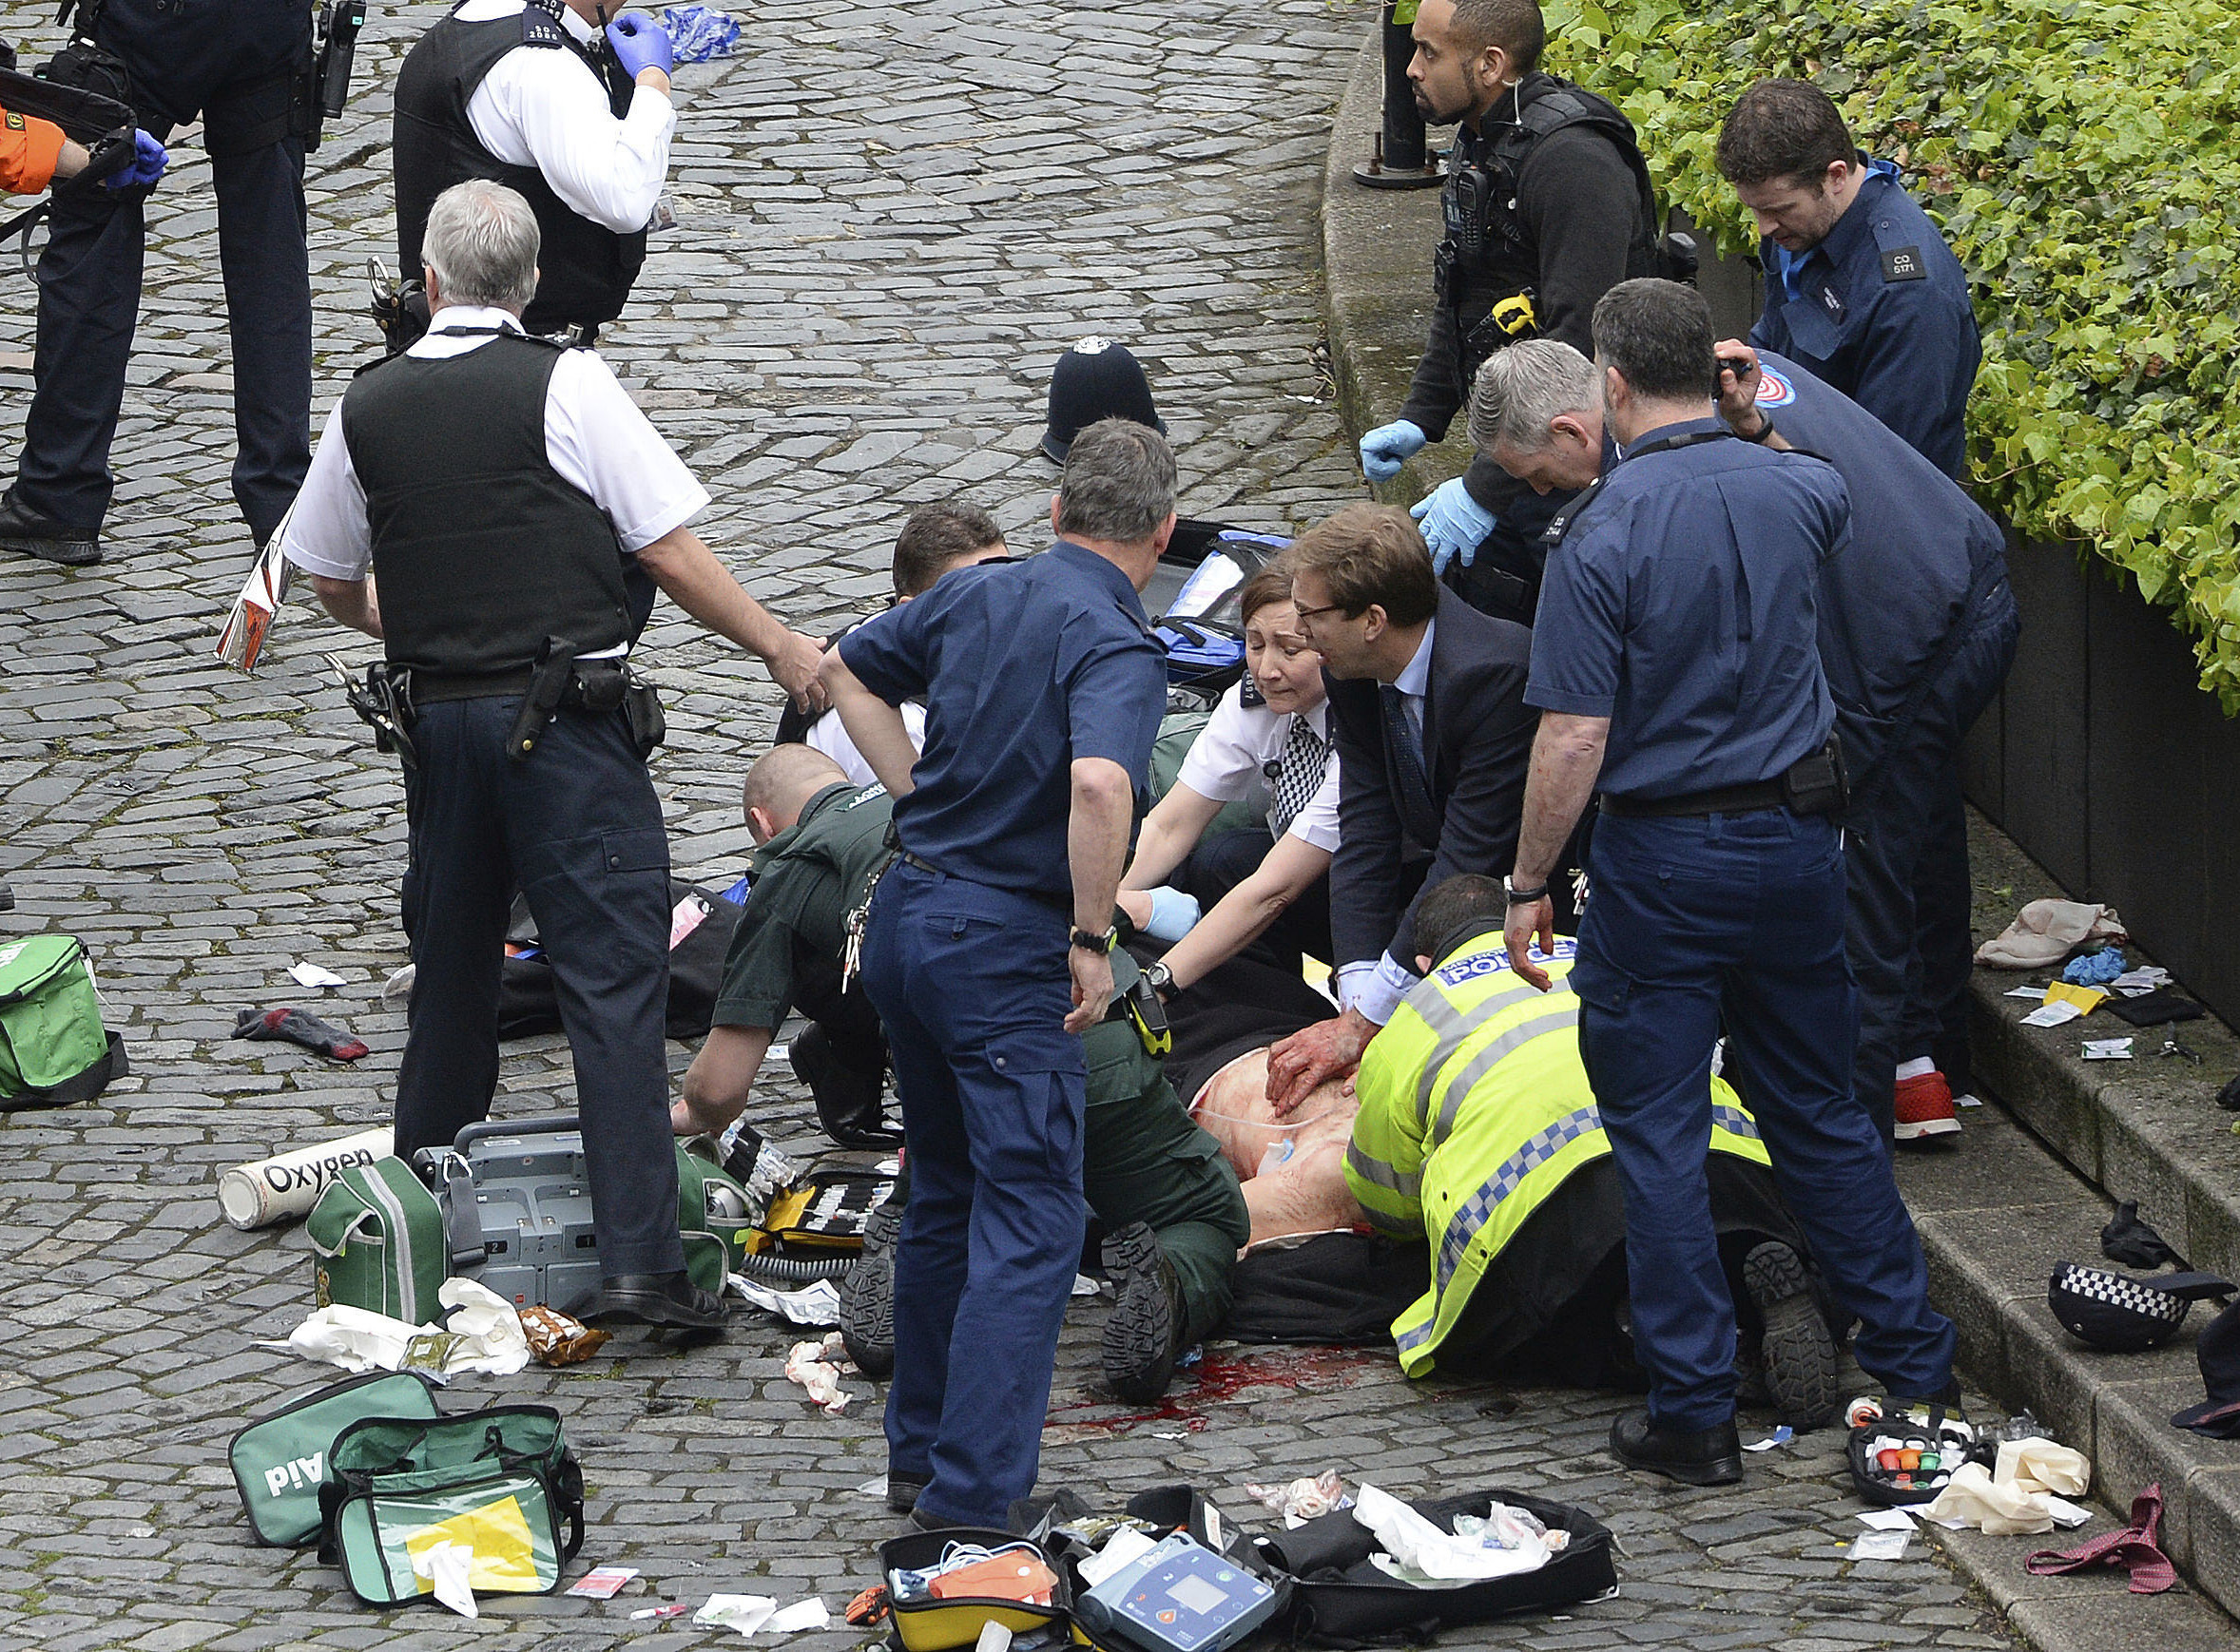 Conservative Member of Parliament Tobias Ellwood, centre, helps emergency services attend to an injured person outside the Houses of Parliament, London on March 22, 2017.